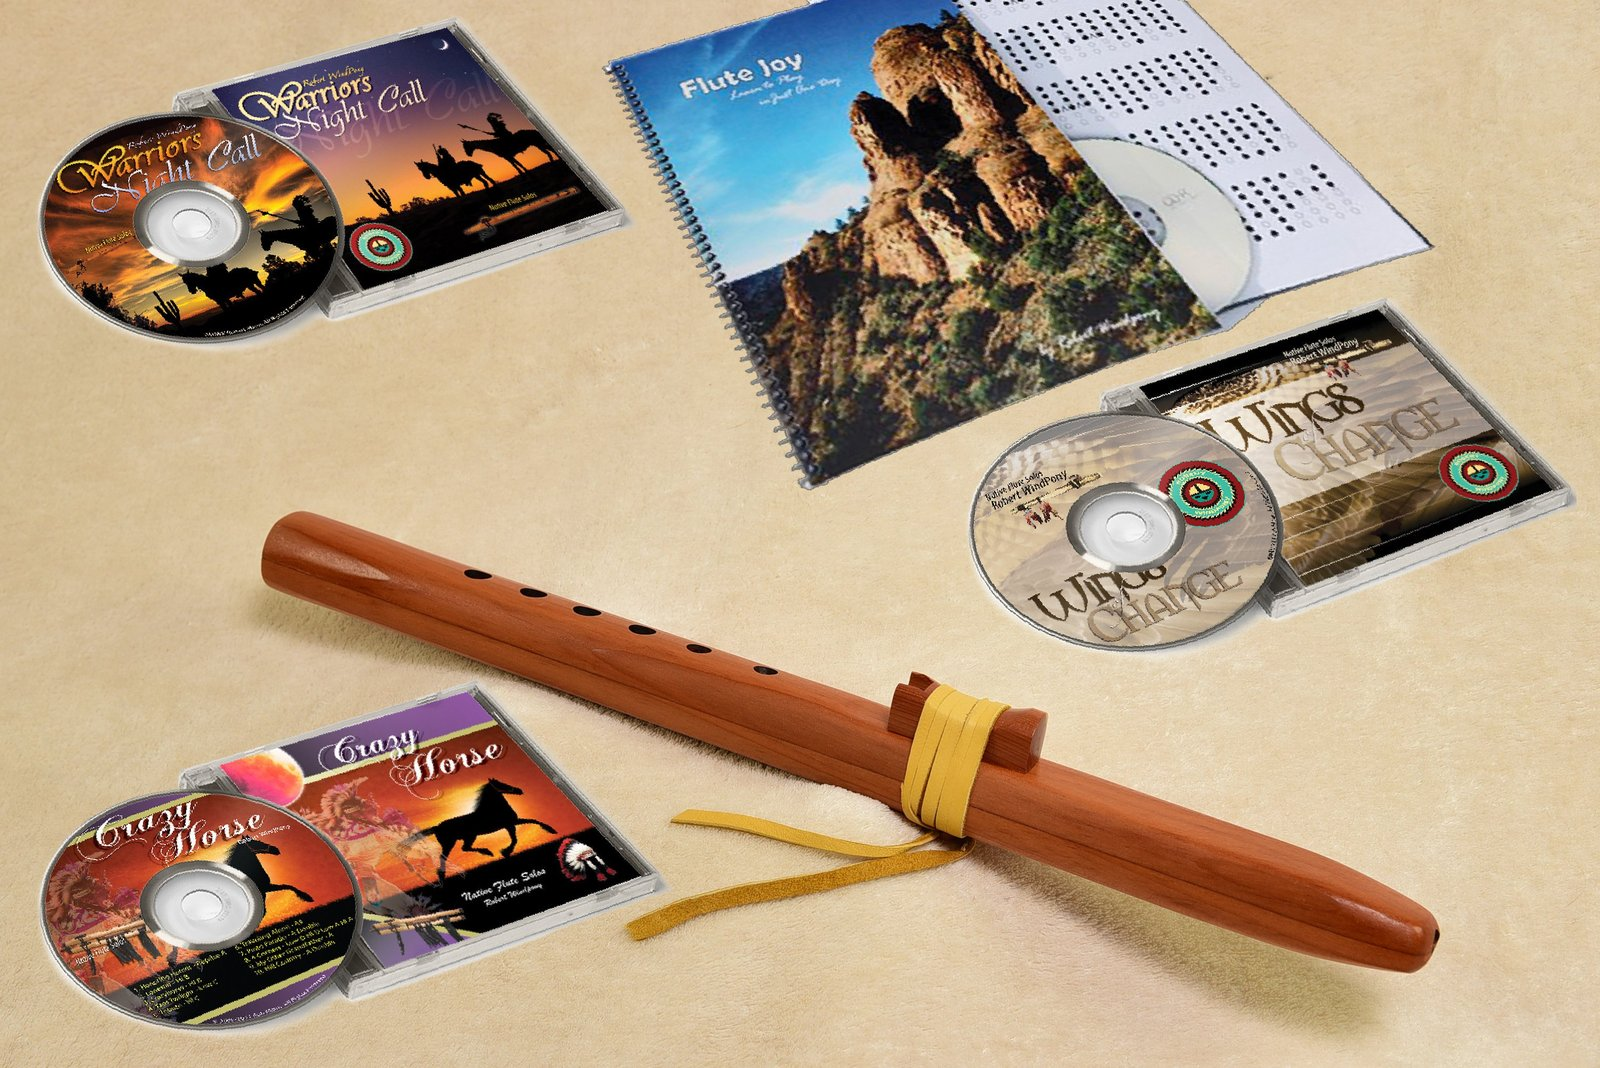 Windpony Hi C Cedar Flute with Instruction Book and 3 Flute CD's